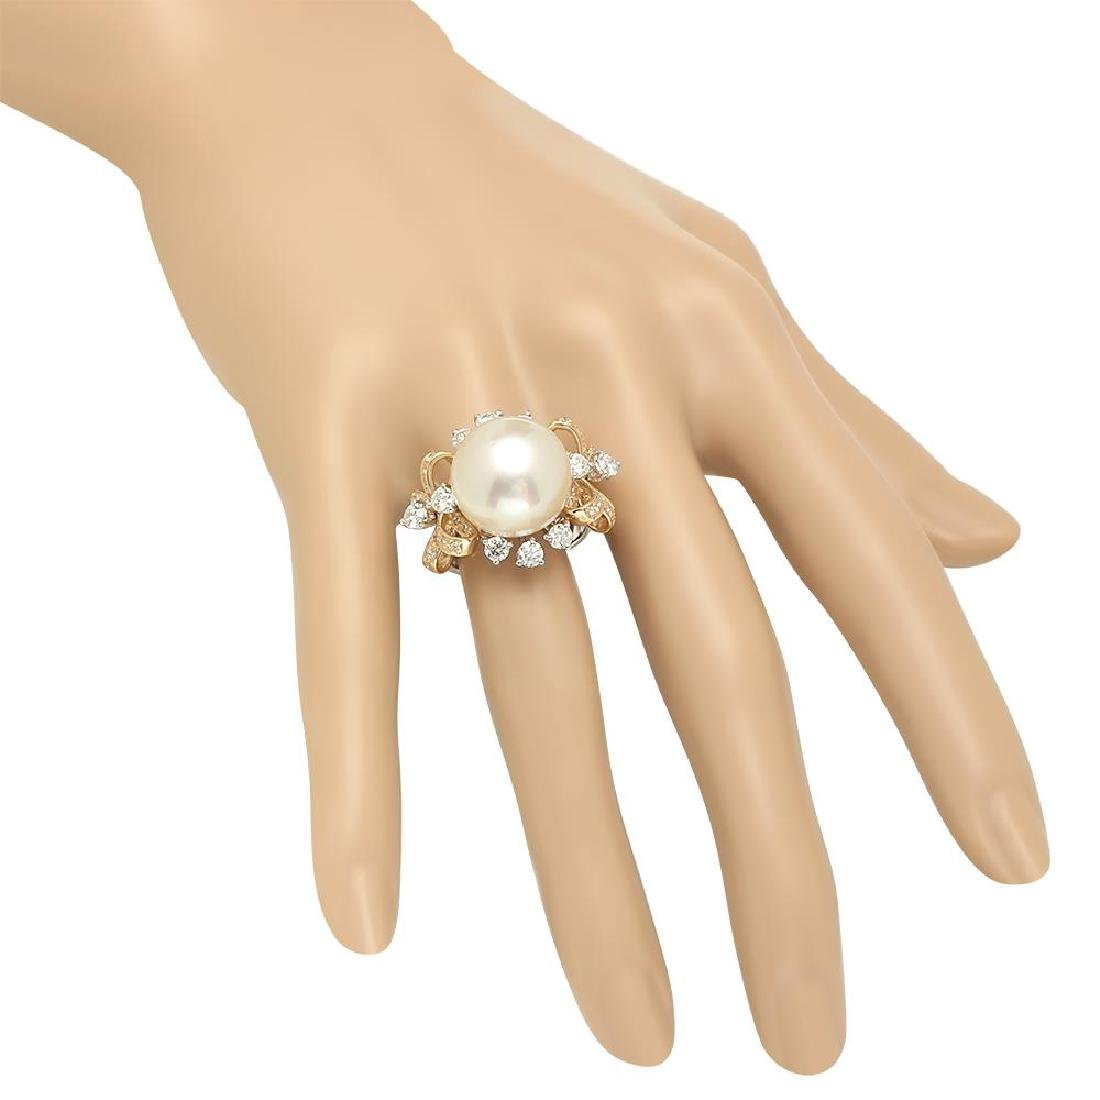 14K Gold 15mm South Sea Pearl 2.26cts Diamond Ring - 3